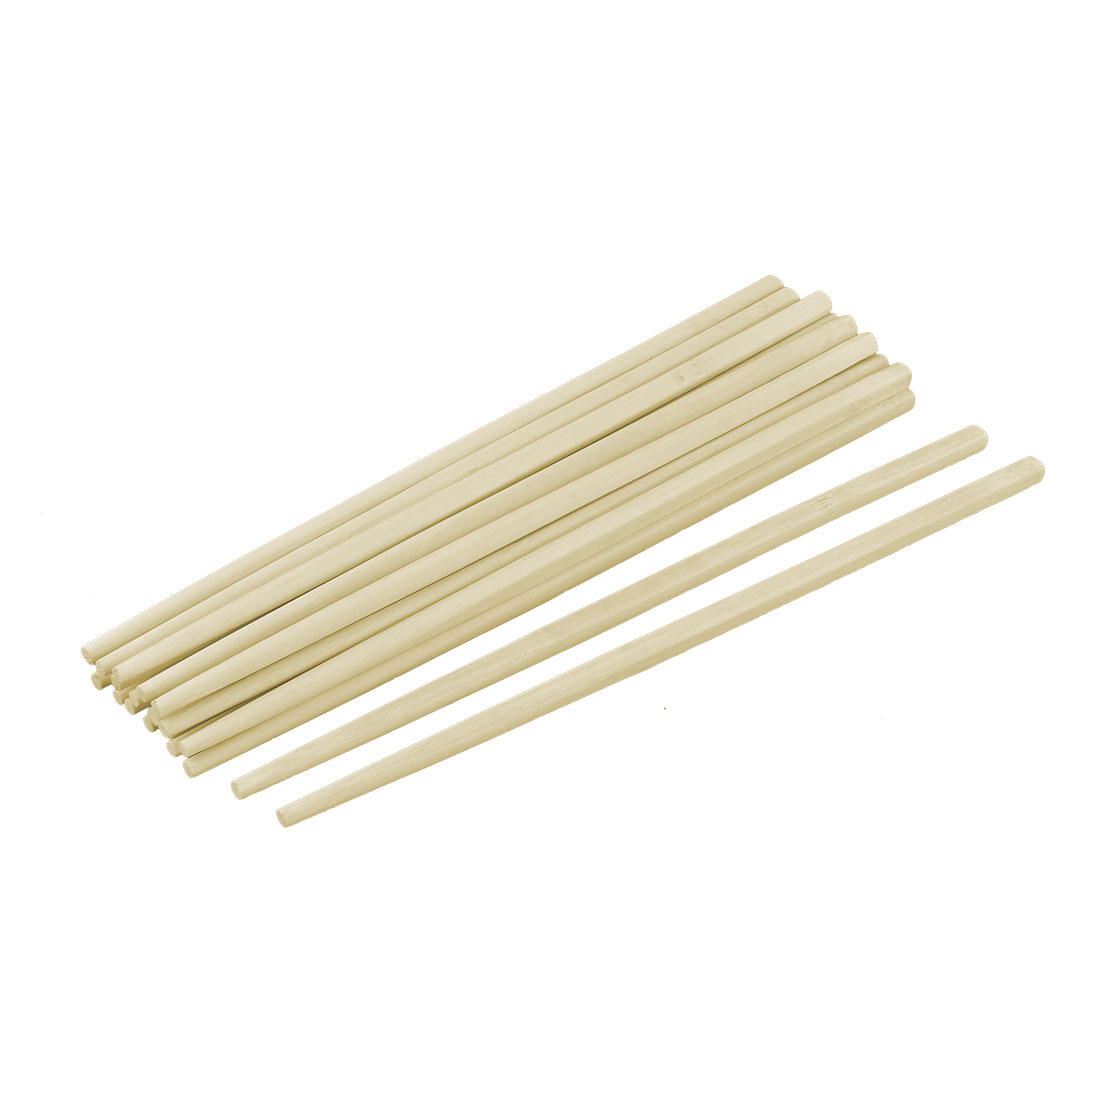 Kitchenware Tableware Bamboo Chinese Style Dinner Service Chopsticks Beige 10 Pairs